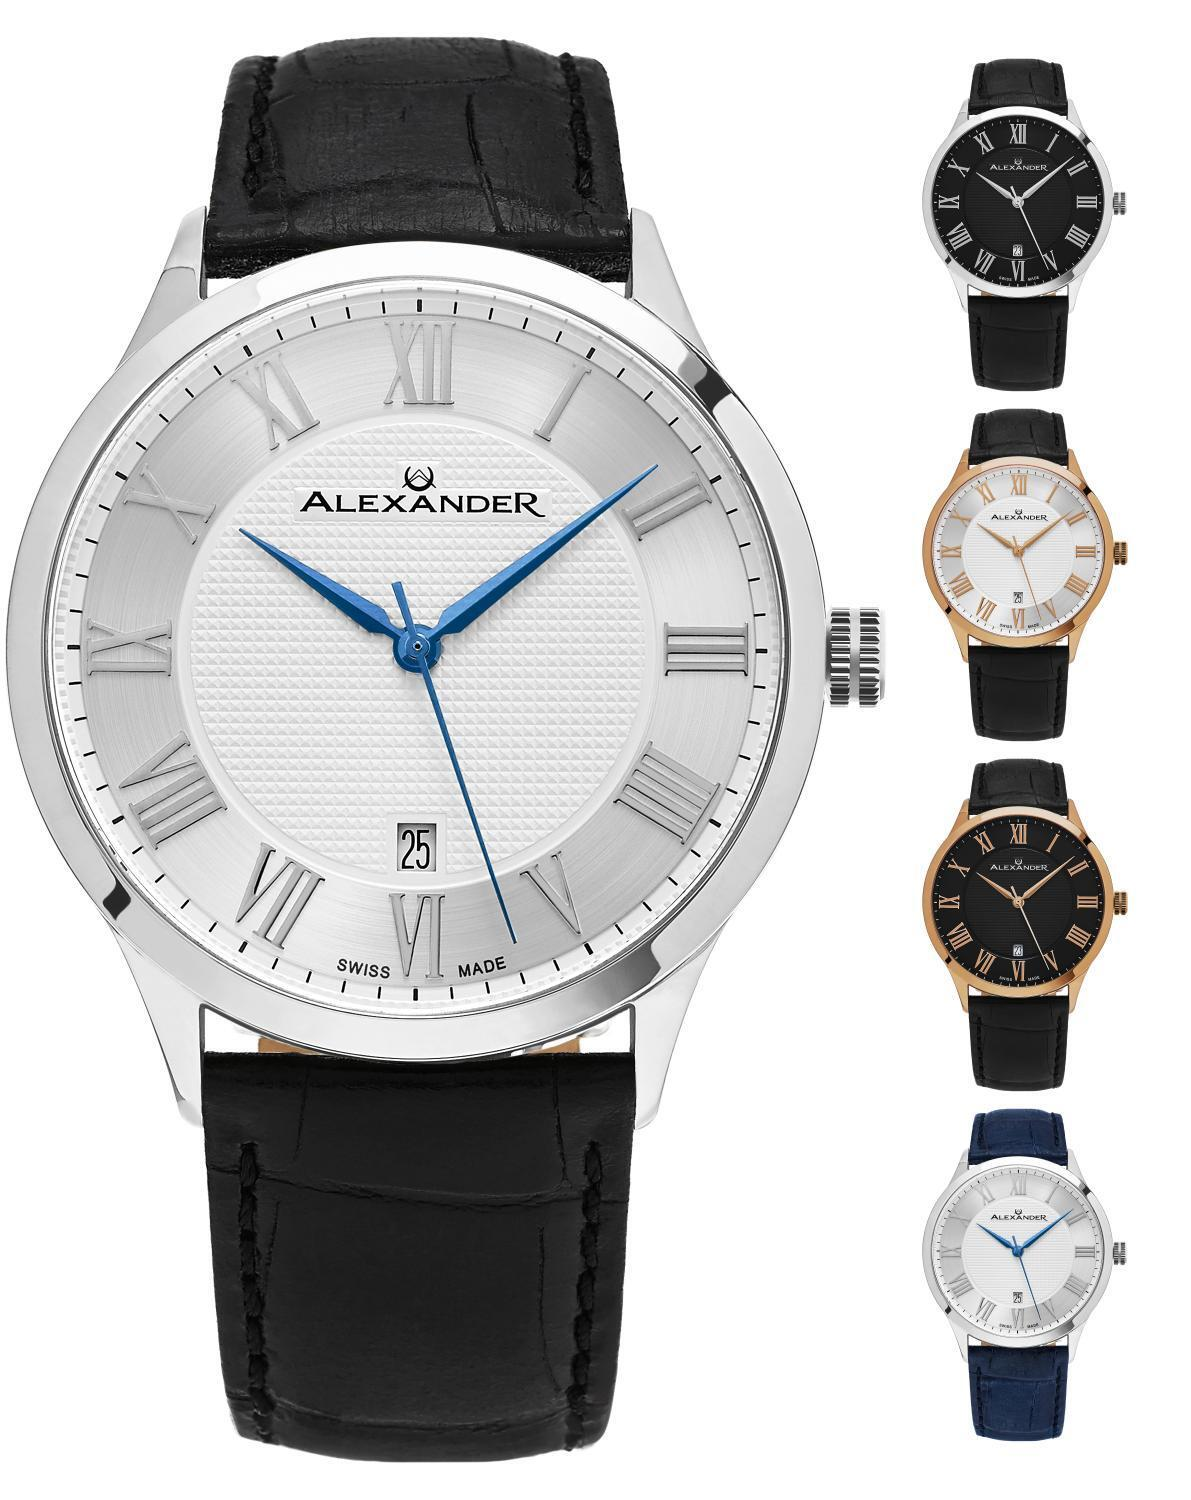 Alexander Swiss-Made Slim 9 mm Dress Men's Watch Leather Strap Sapphire Crystal